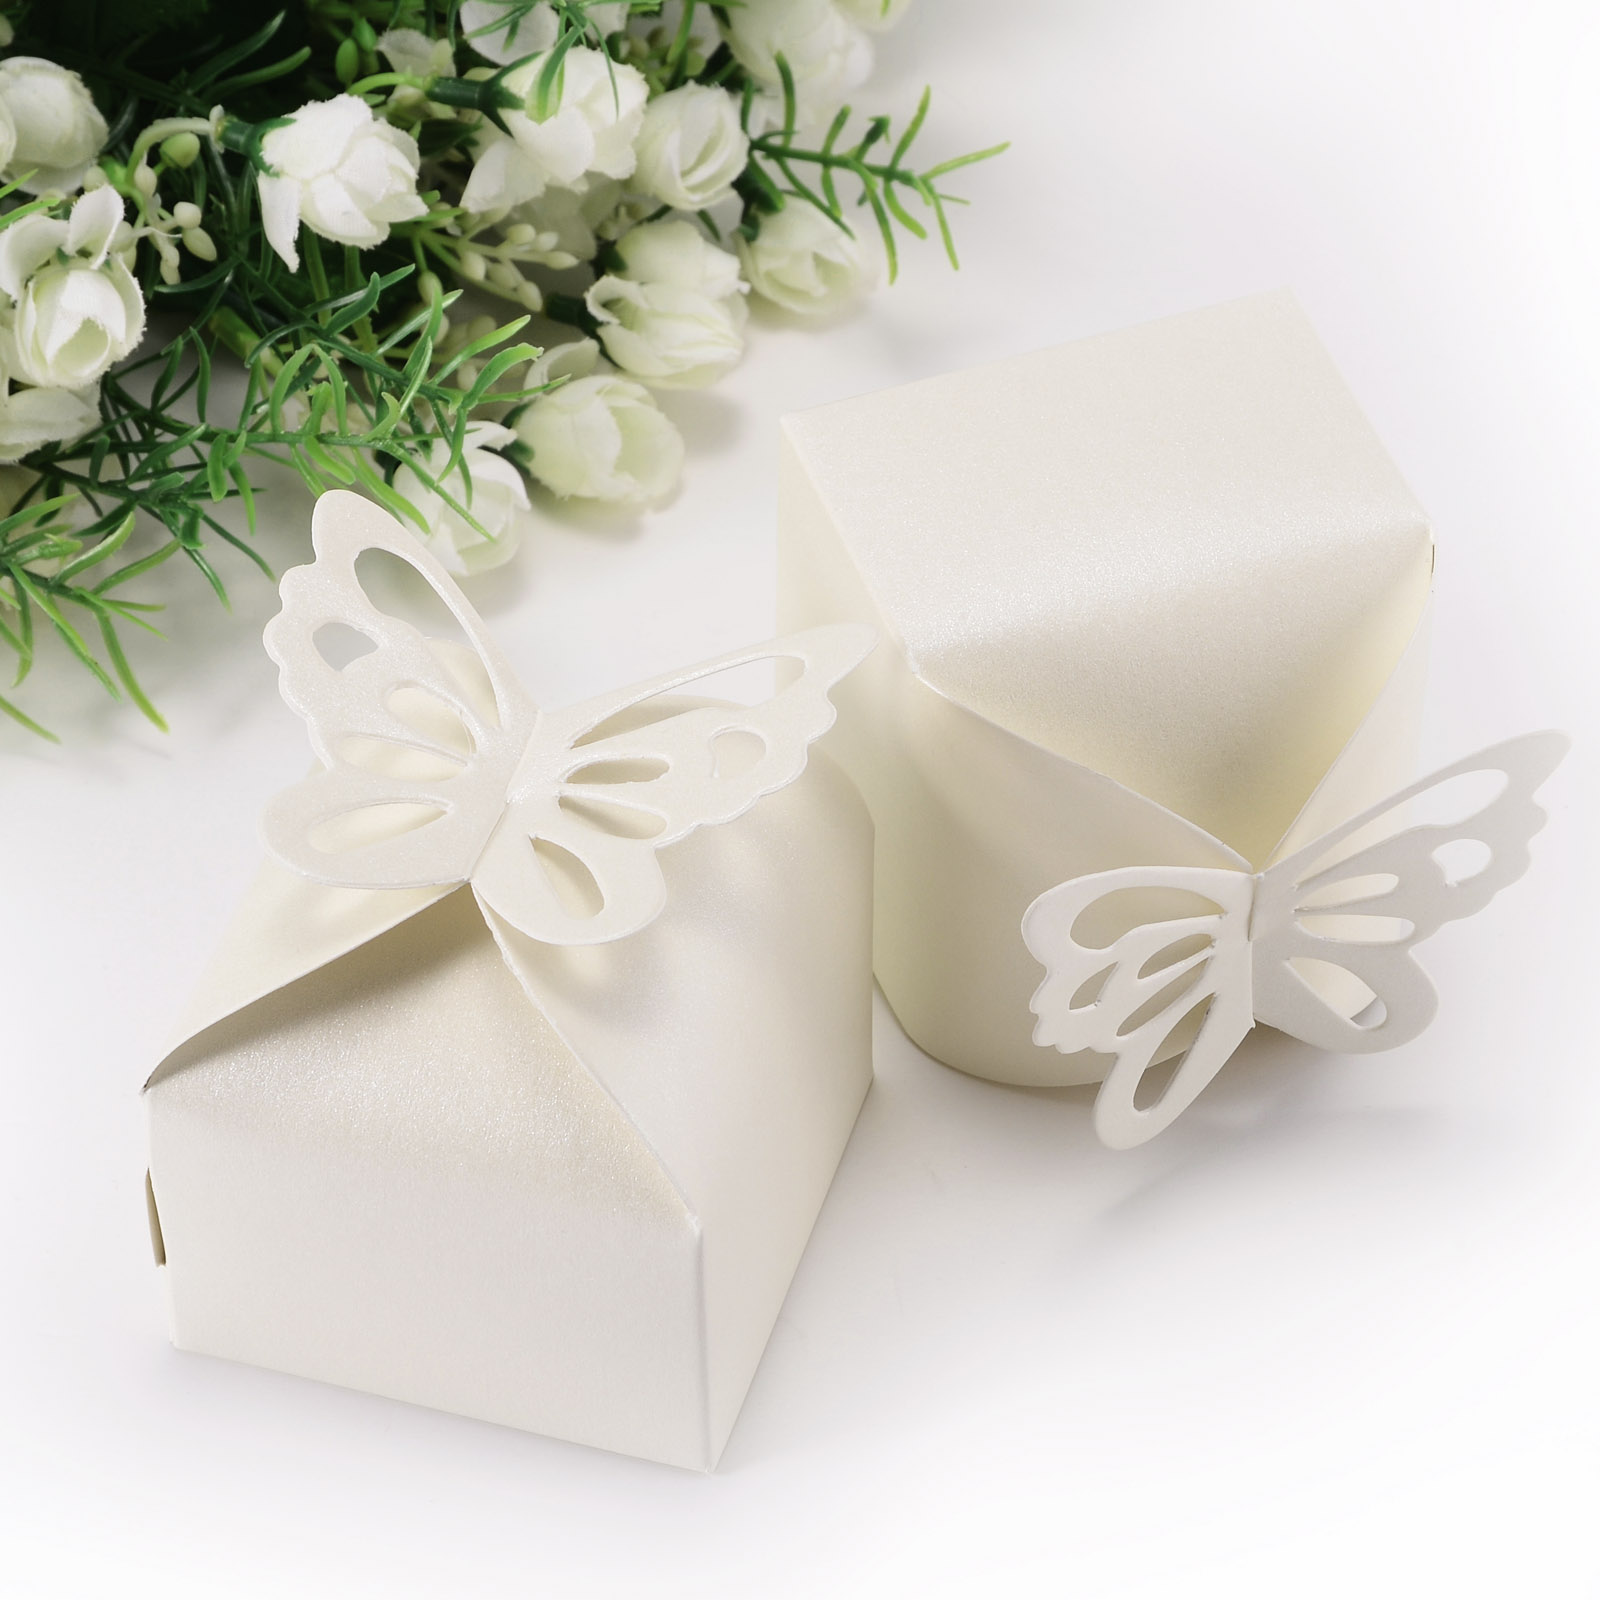 50pcs Butterfly Top Gift Candy Bomboniere Boxes Wedding Party Favor ...